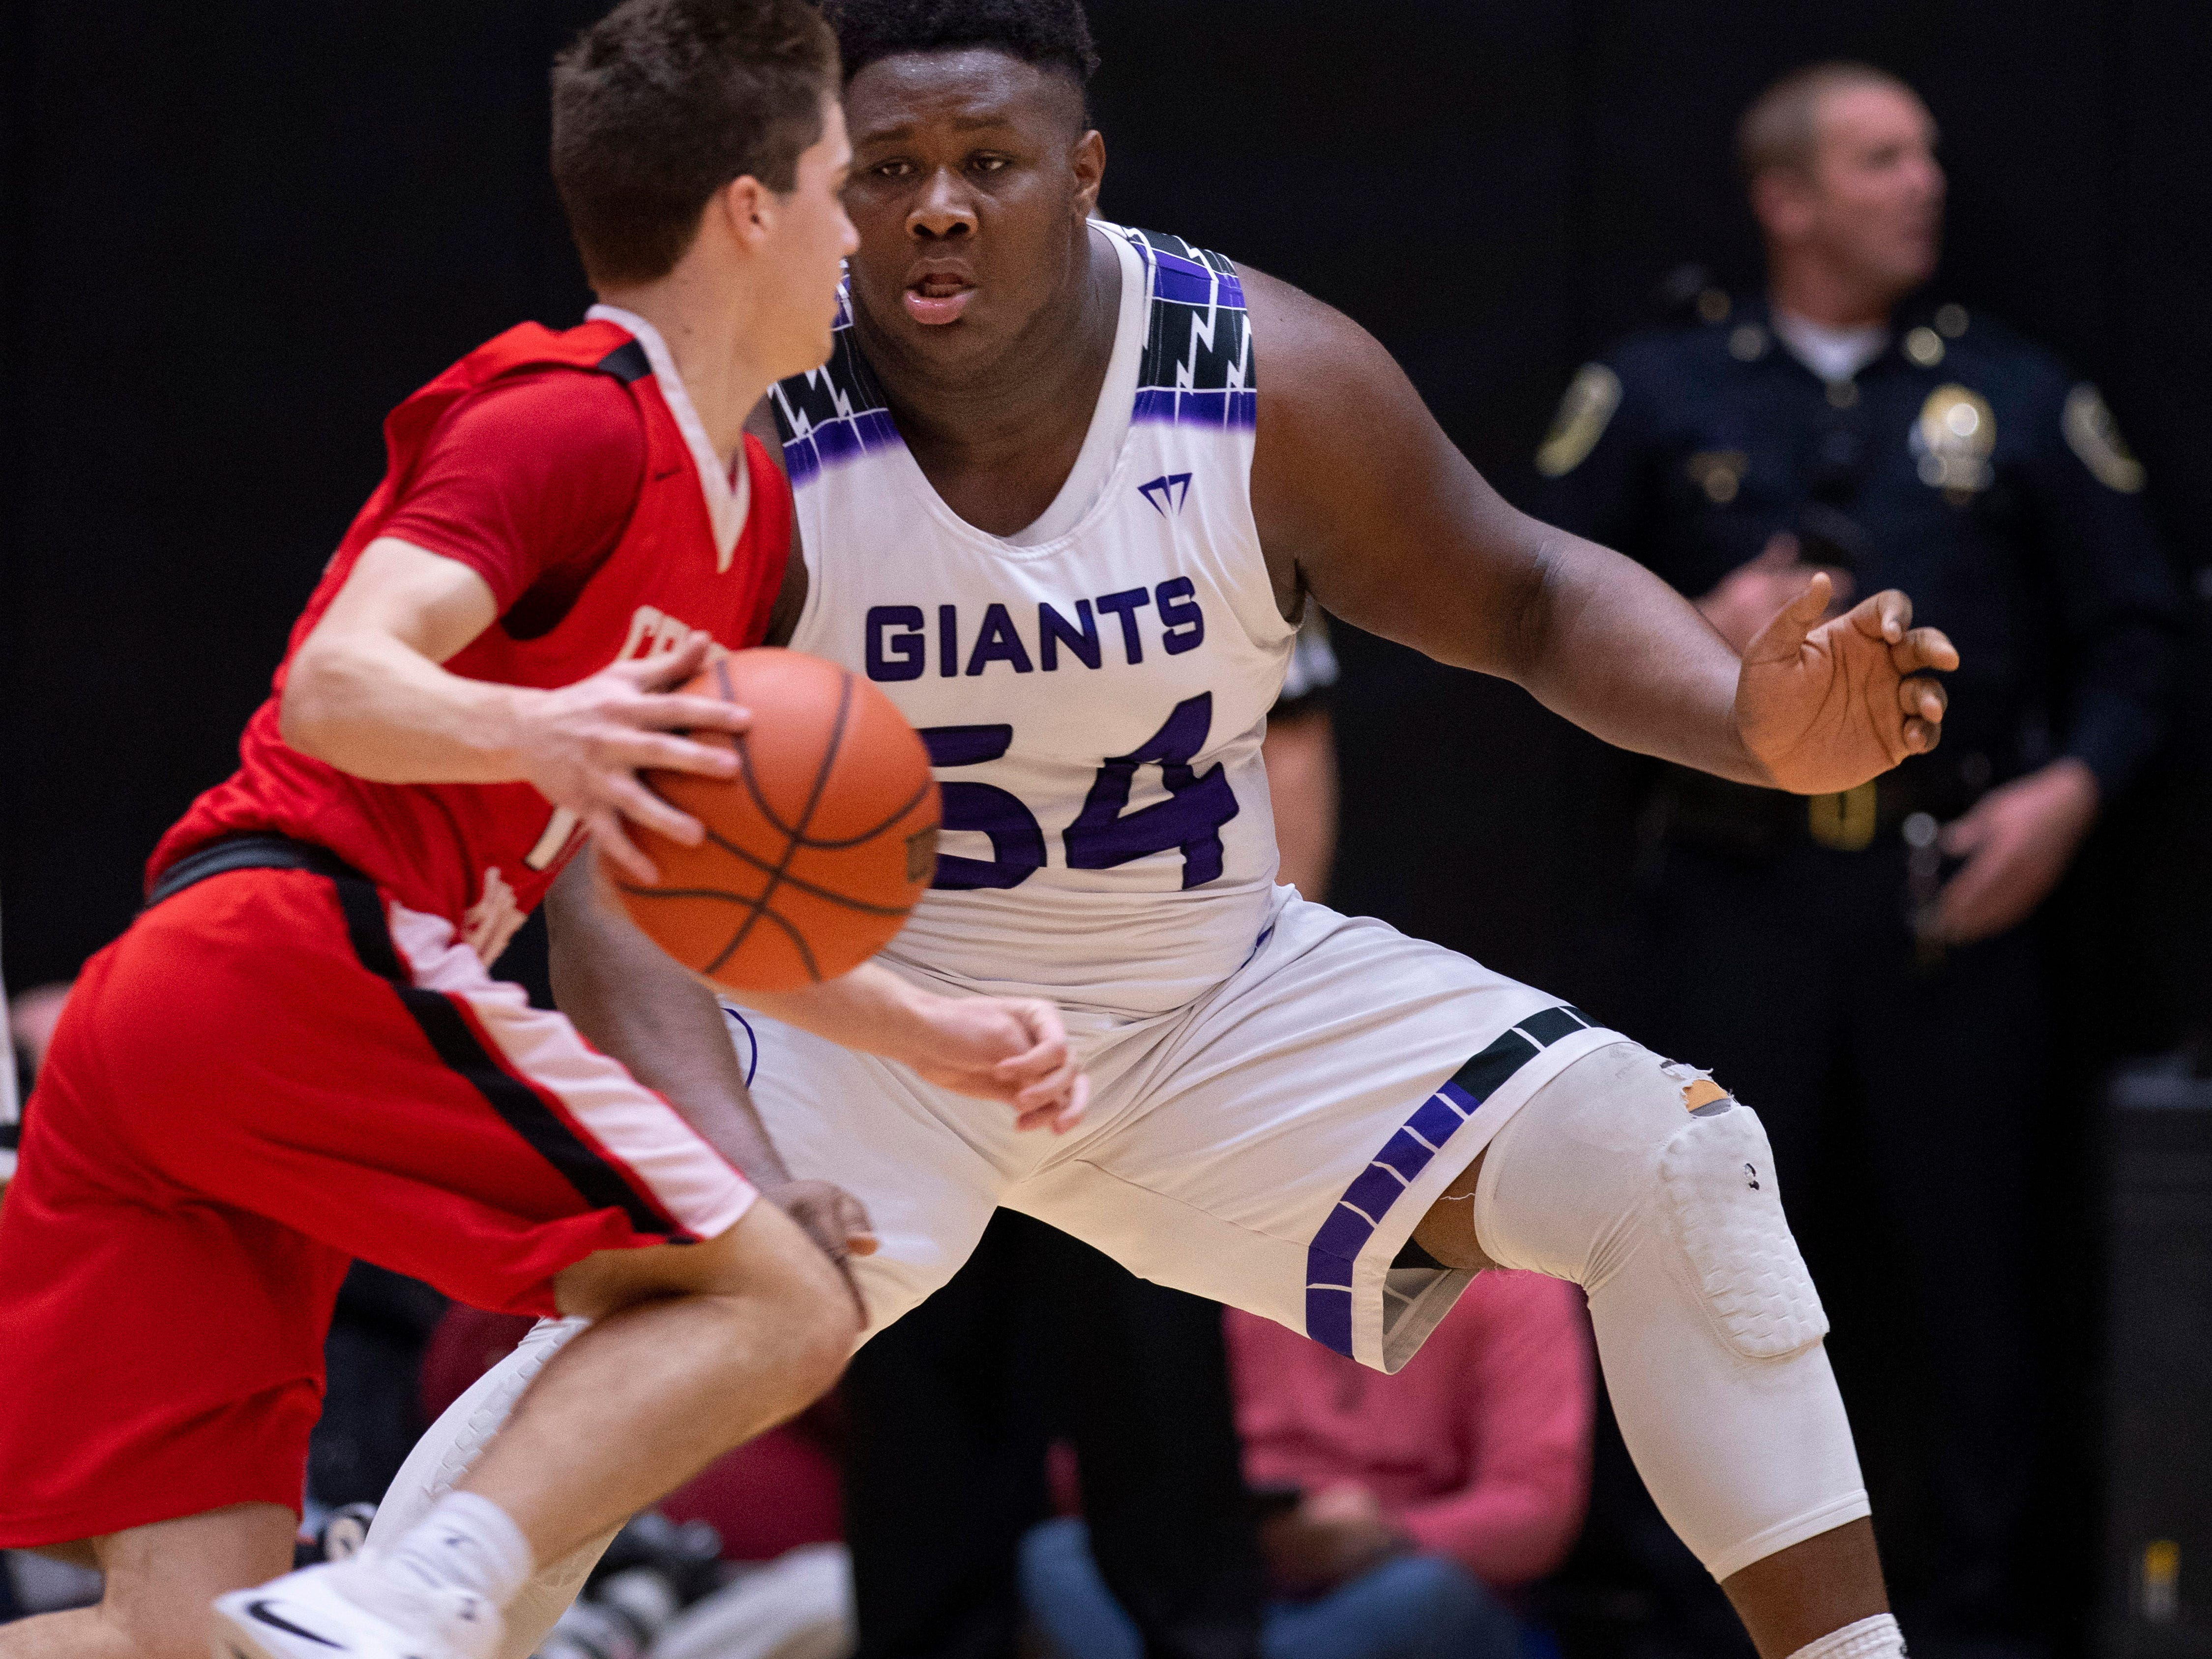 Center Grove's Spencer Piercefield (10) is defended by Ben Davis's Dawand Jones (54) during the 4A Boys Indiana Semi-State Basketball Tournament at the Hatchet House in Washington, Ind., Saturday afternoon.